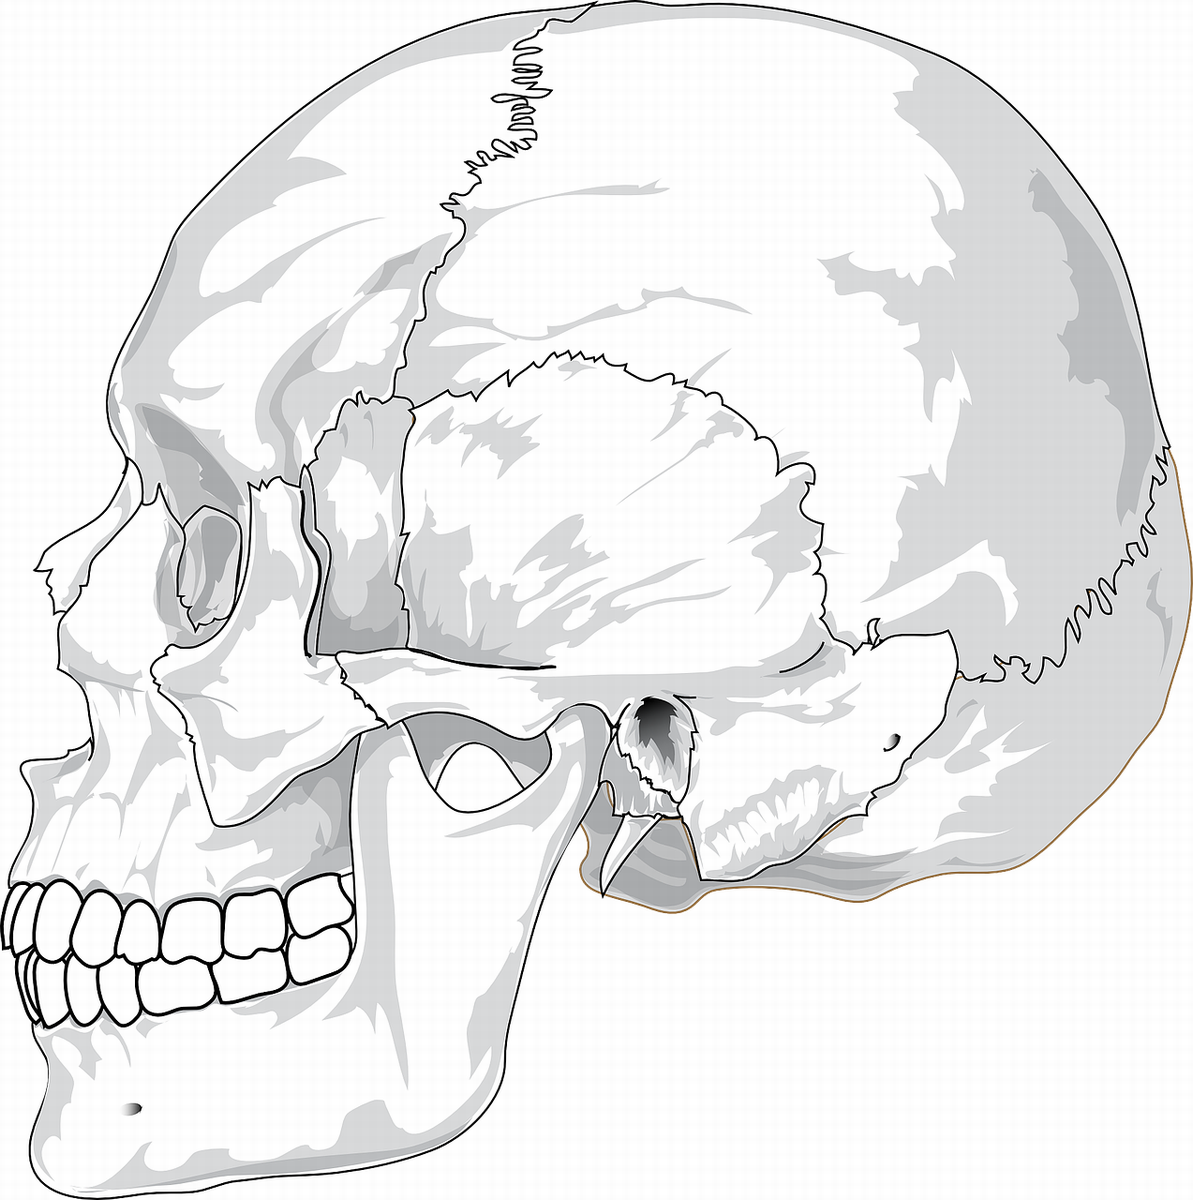 Beyond The Jaw And Mouth Atm Lessons For Those Suffering From Tmj